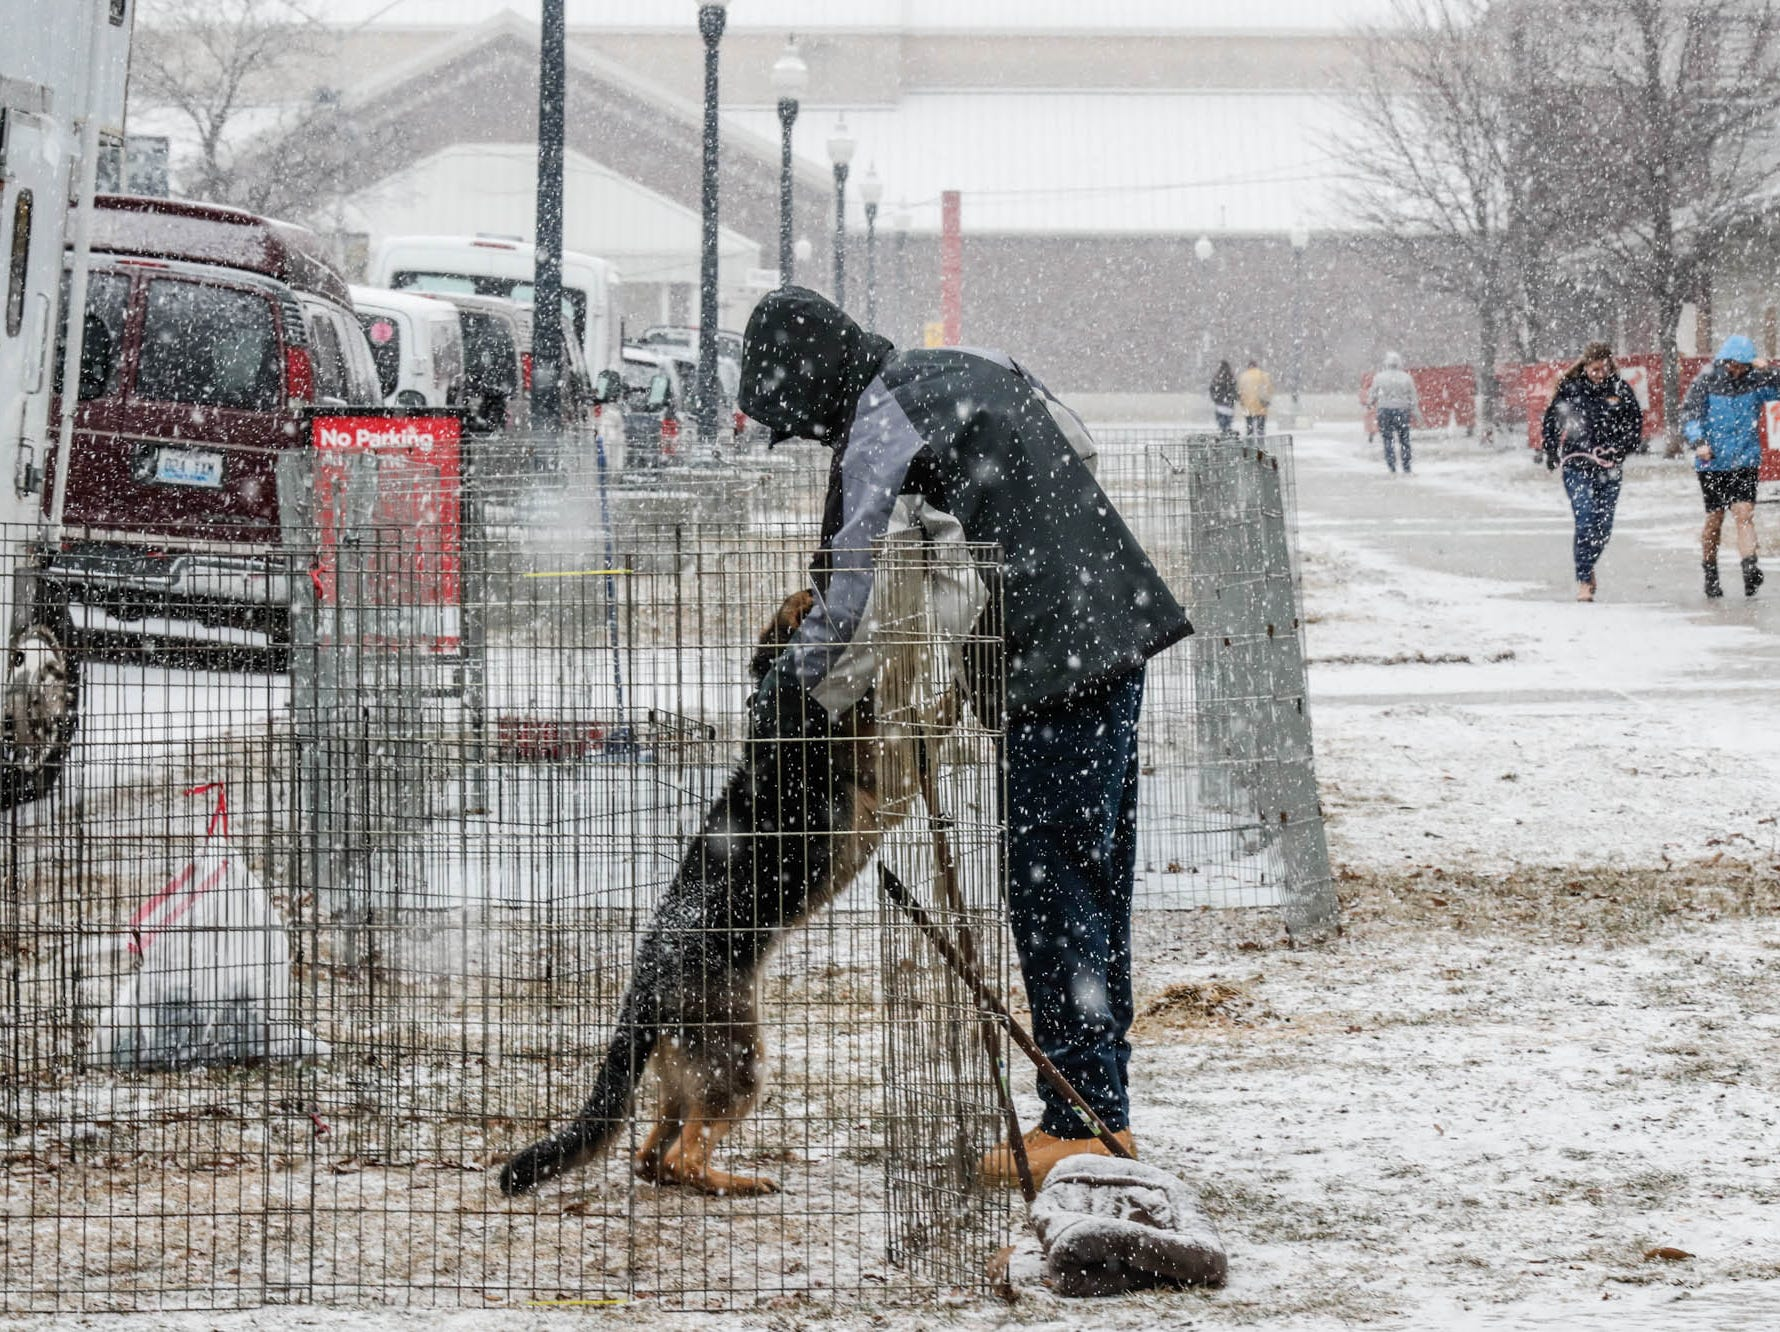 Chyna, a German Shepherd puppy plays in the snow with a visitor during the Indy Winter Classic All Breed Dog Show, held at the Indiana State Fairgrounds on Sunday, Feb. 10, 2019.